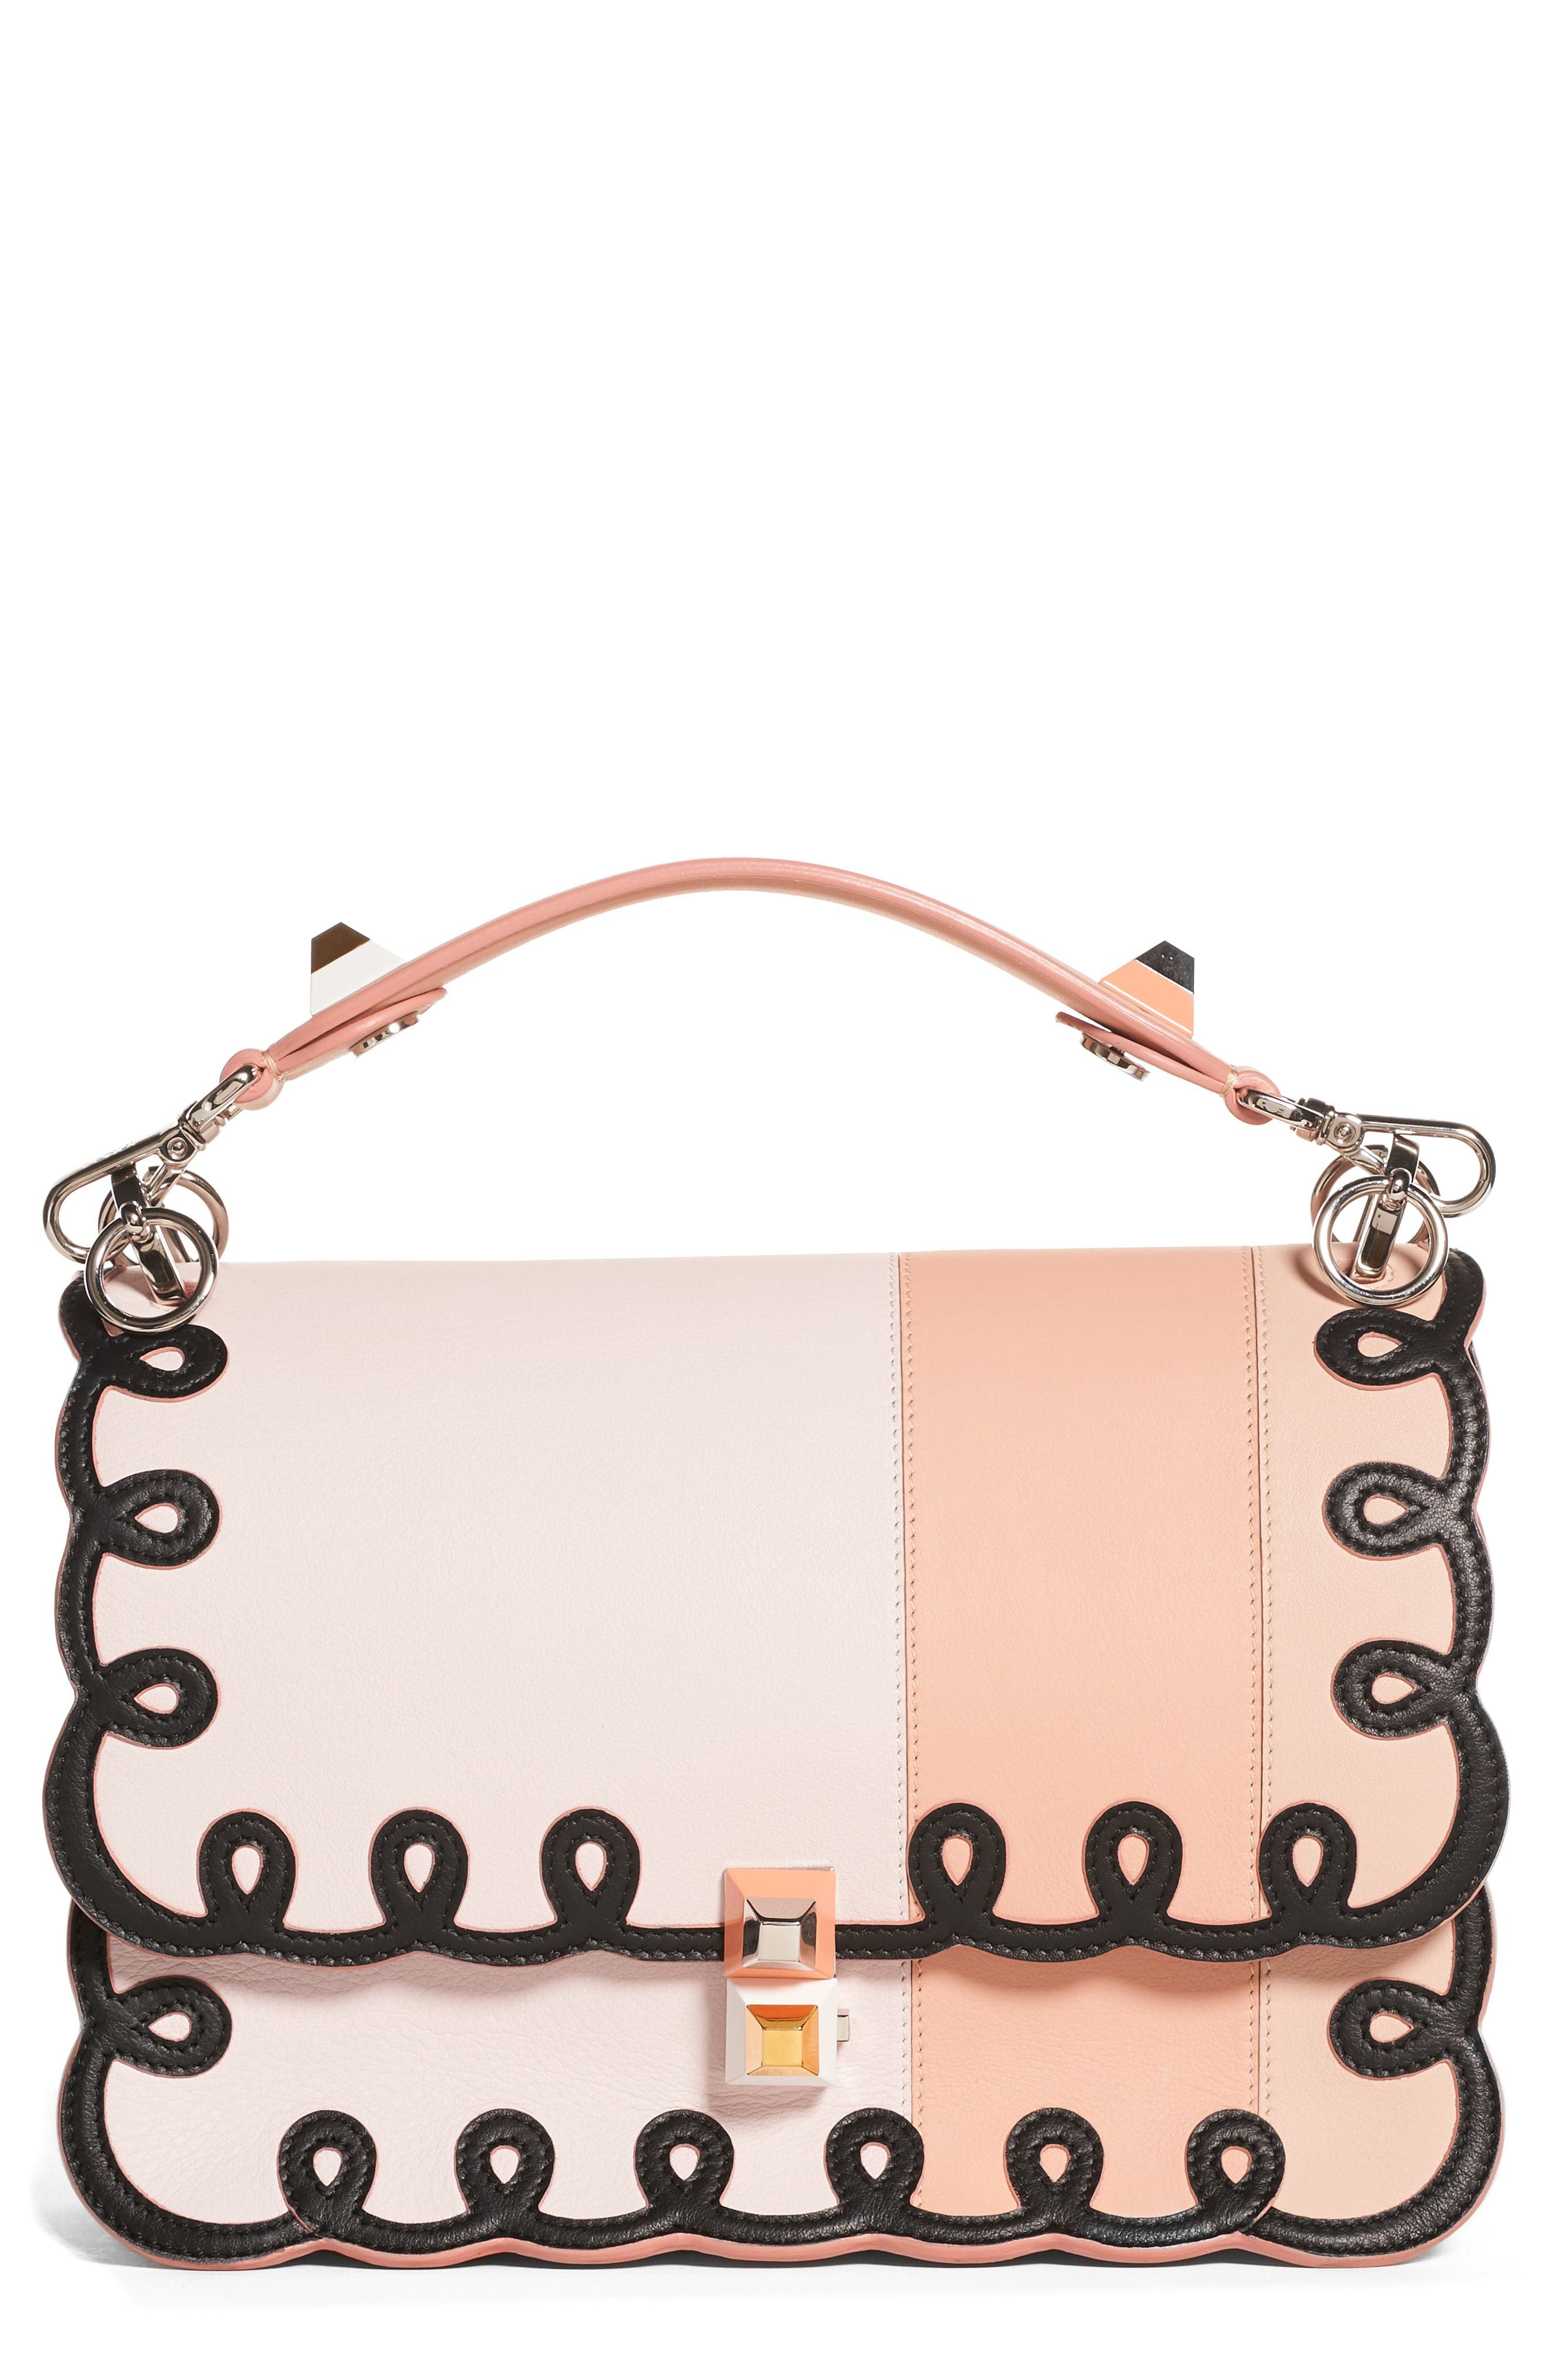 Main Image - Fendi Kan I Scalloped Stripe Leather Shoulder Bag